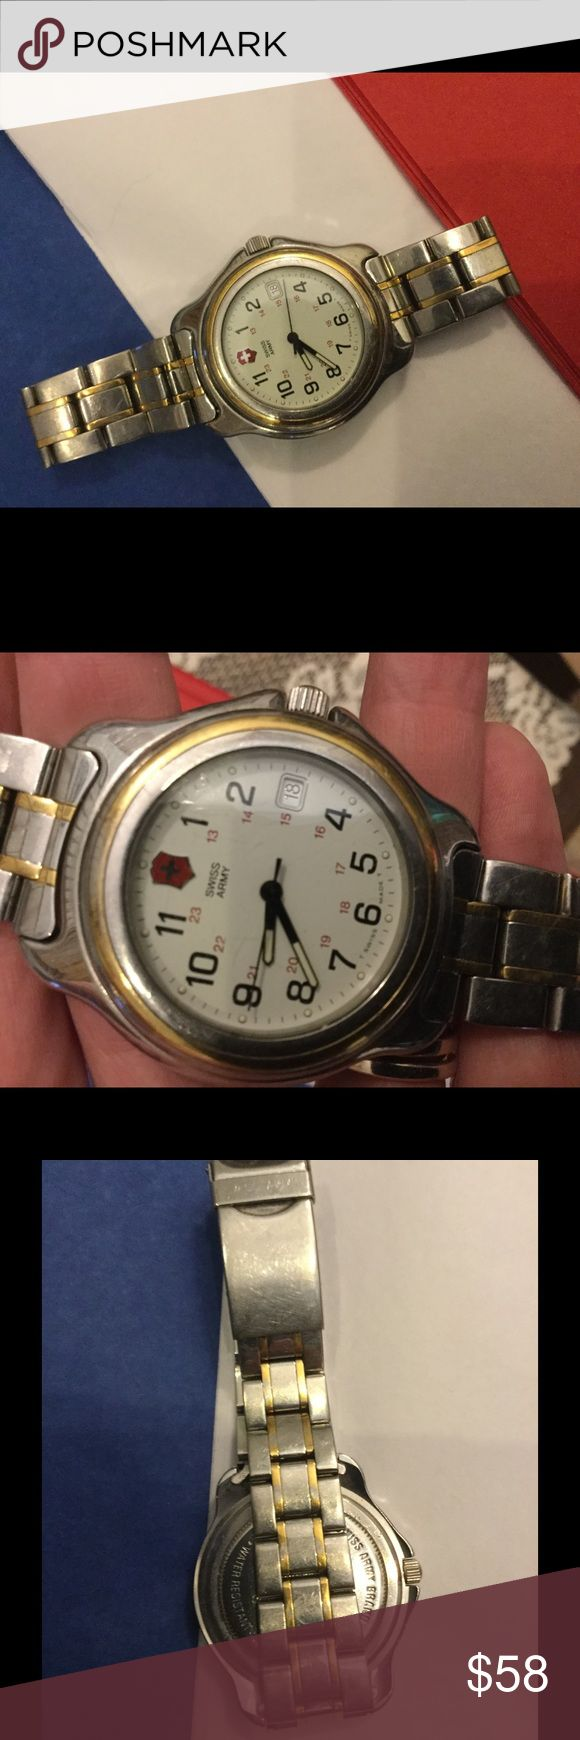 """Swiss Army watch, Swiss made, water resistant 330 Very nice men's watch, Swiss Army brand, Swiss made. Water resistant to 330 feet. Engraved on back """" Steve Johnson General Electric company 20 years"""". This watch is running fine. Great  used condition. Swiss Army Accessories Watches"""